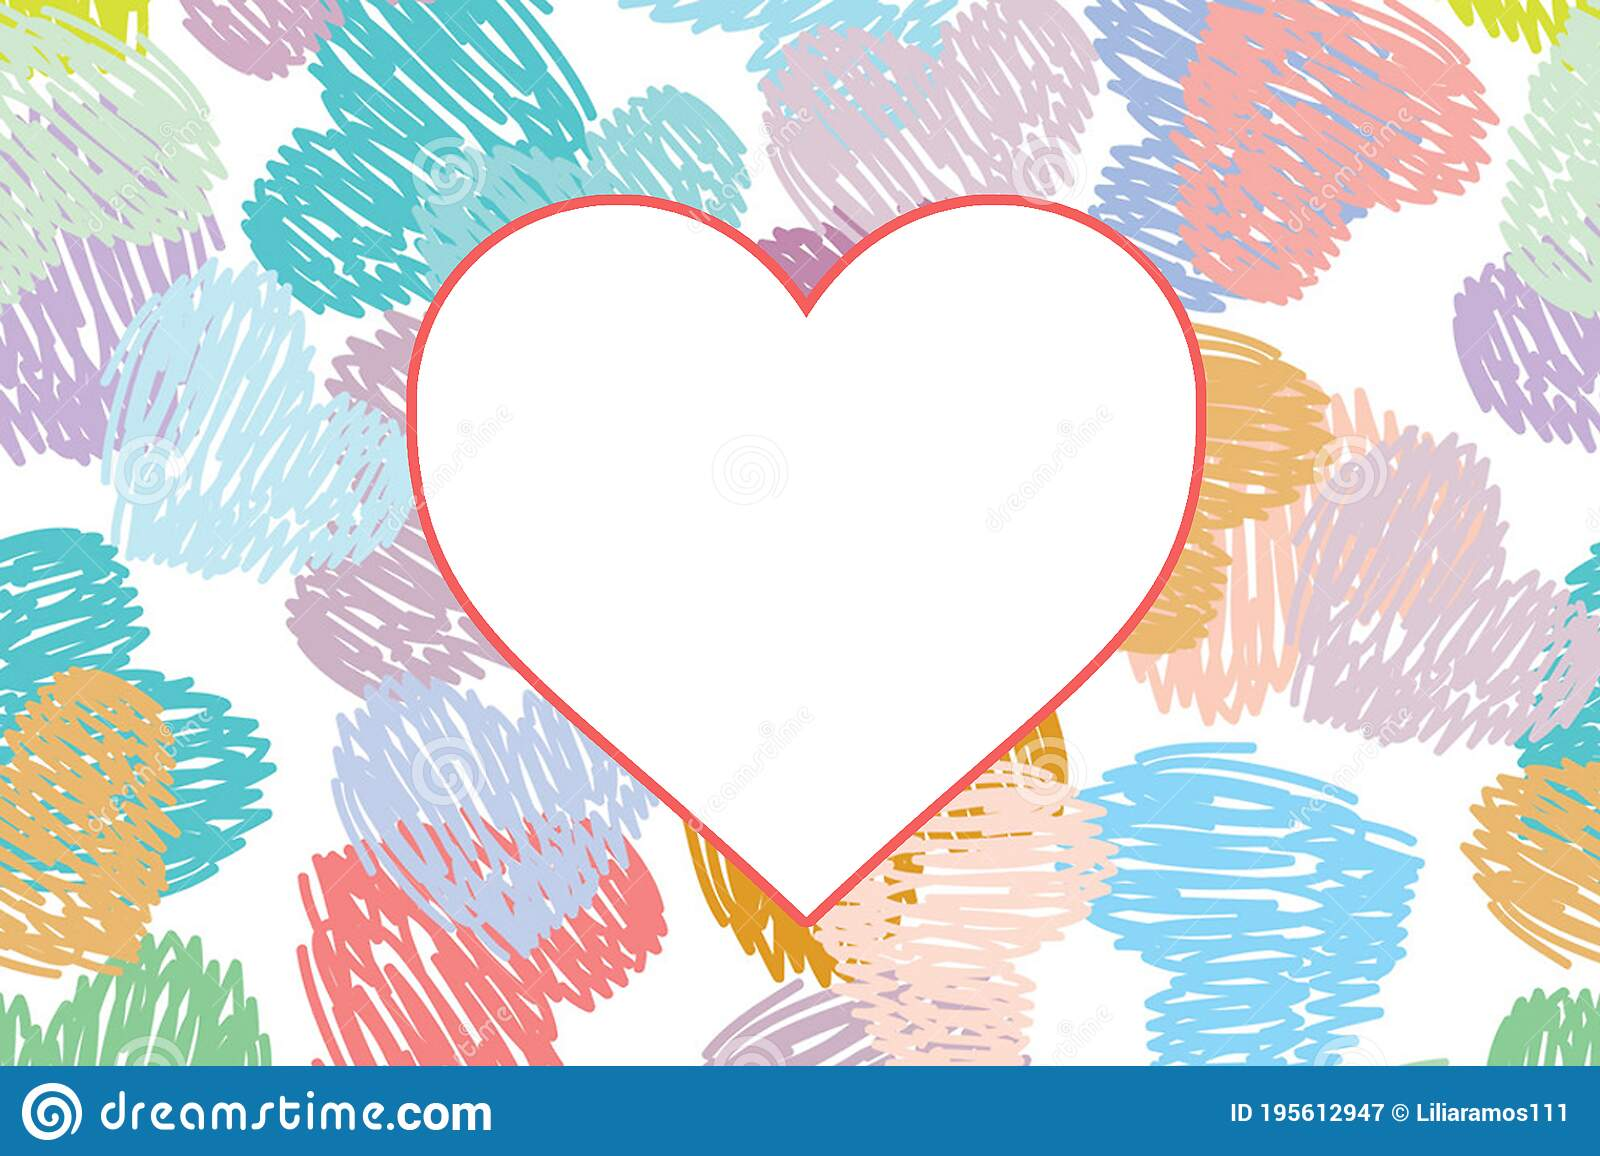 Sweet Pastel Color Heart Romantic Wallpaper Stock Image Image Of Abstract Pattern 195612947